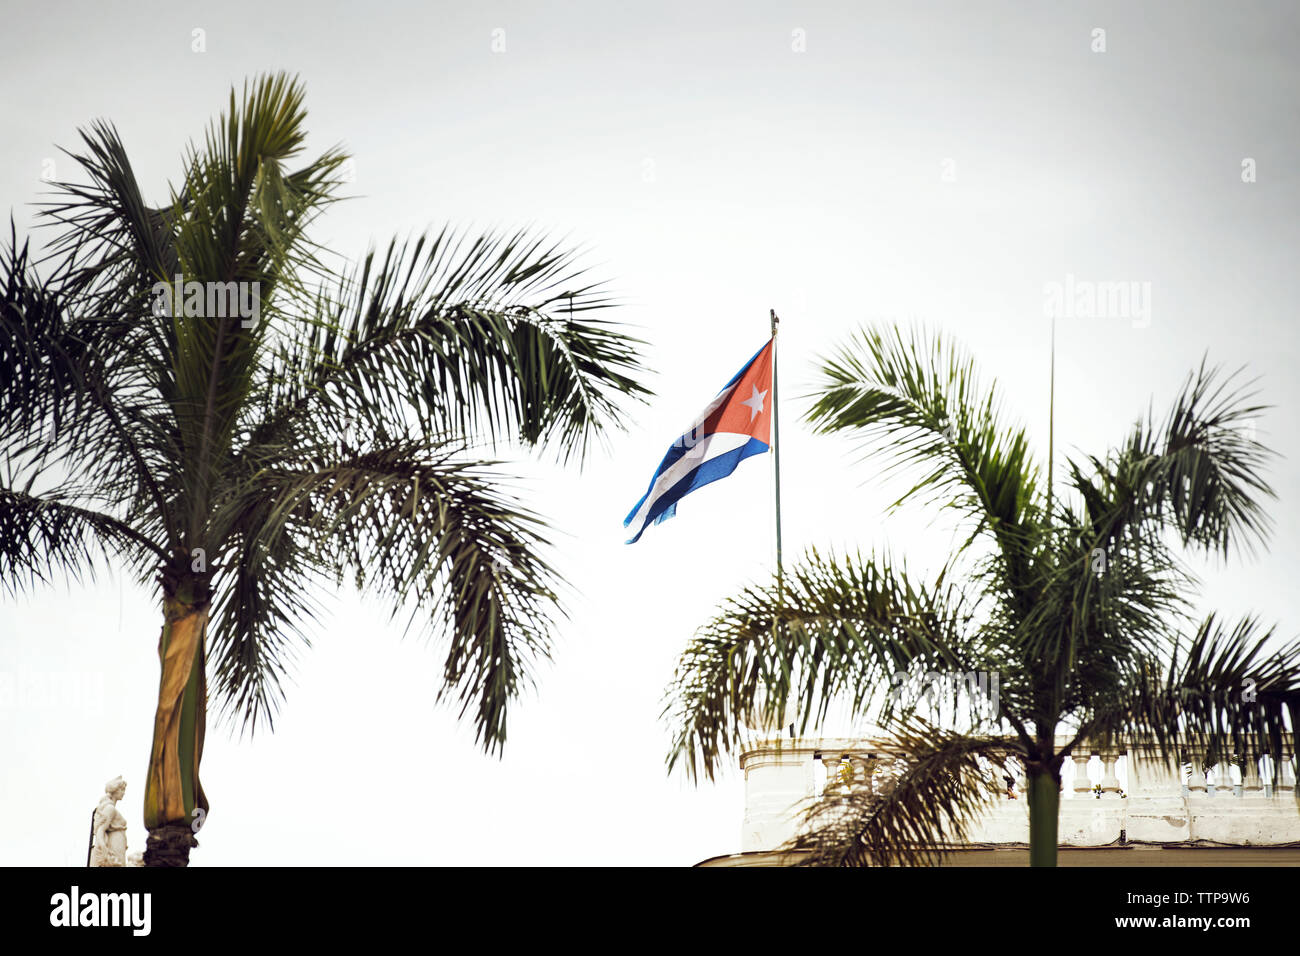 Cuban flag by palm trees against sky - Stock Image